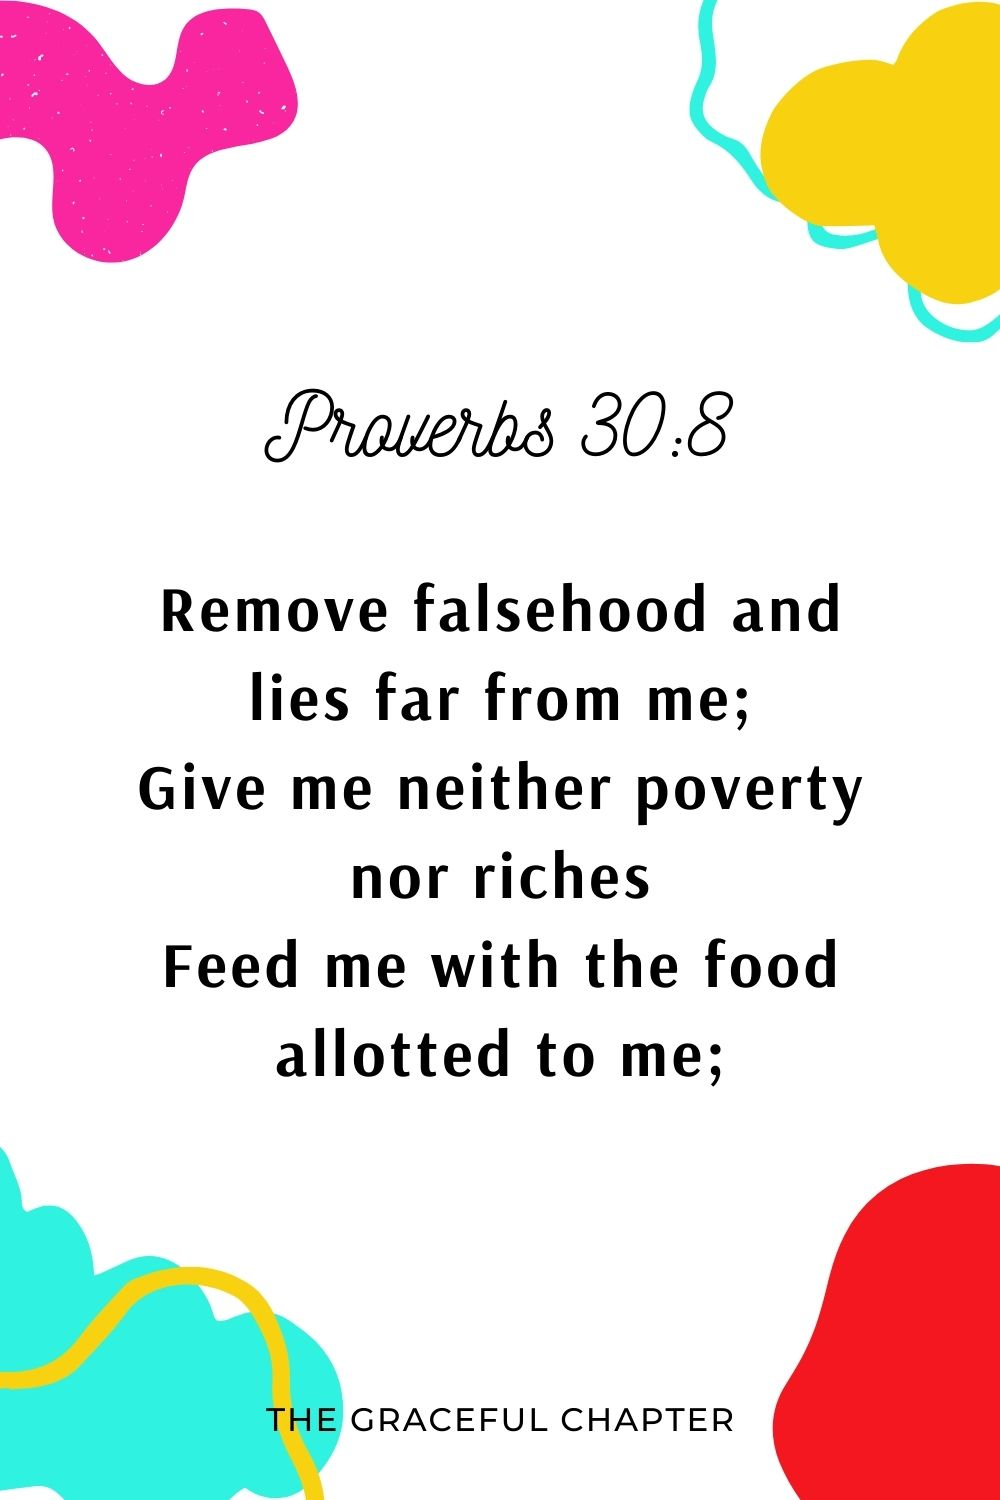 Remove falsehood and lies far from me; Give me neither poverty nor riches Feed me with the food allotted to me; Proverbs 30:8